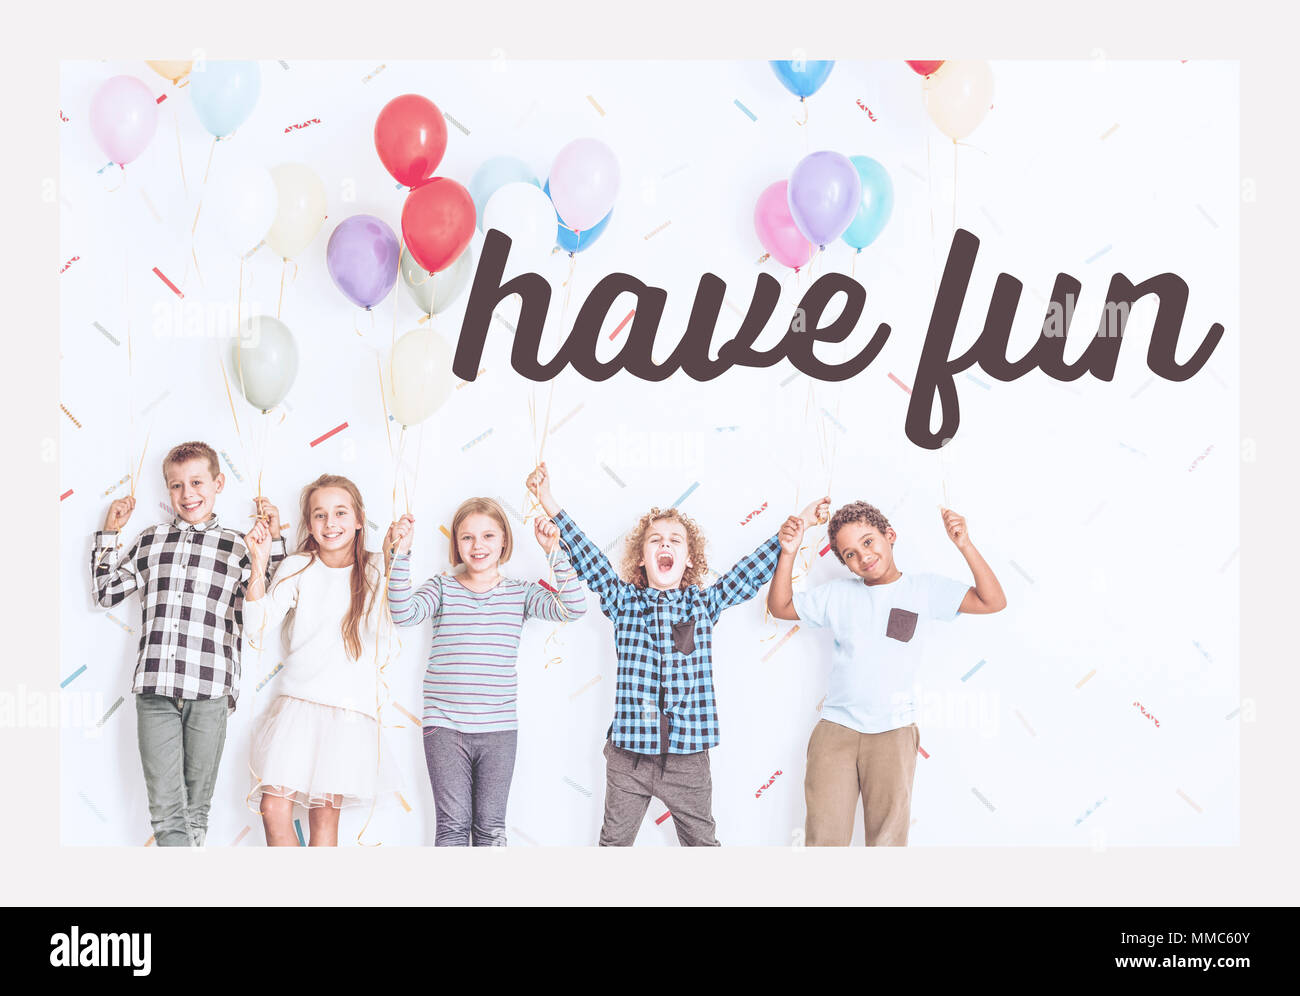 Writing 'have fun' and happy kids standing with balloons in a room - Stock Image